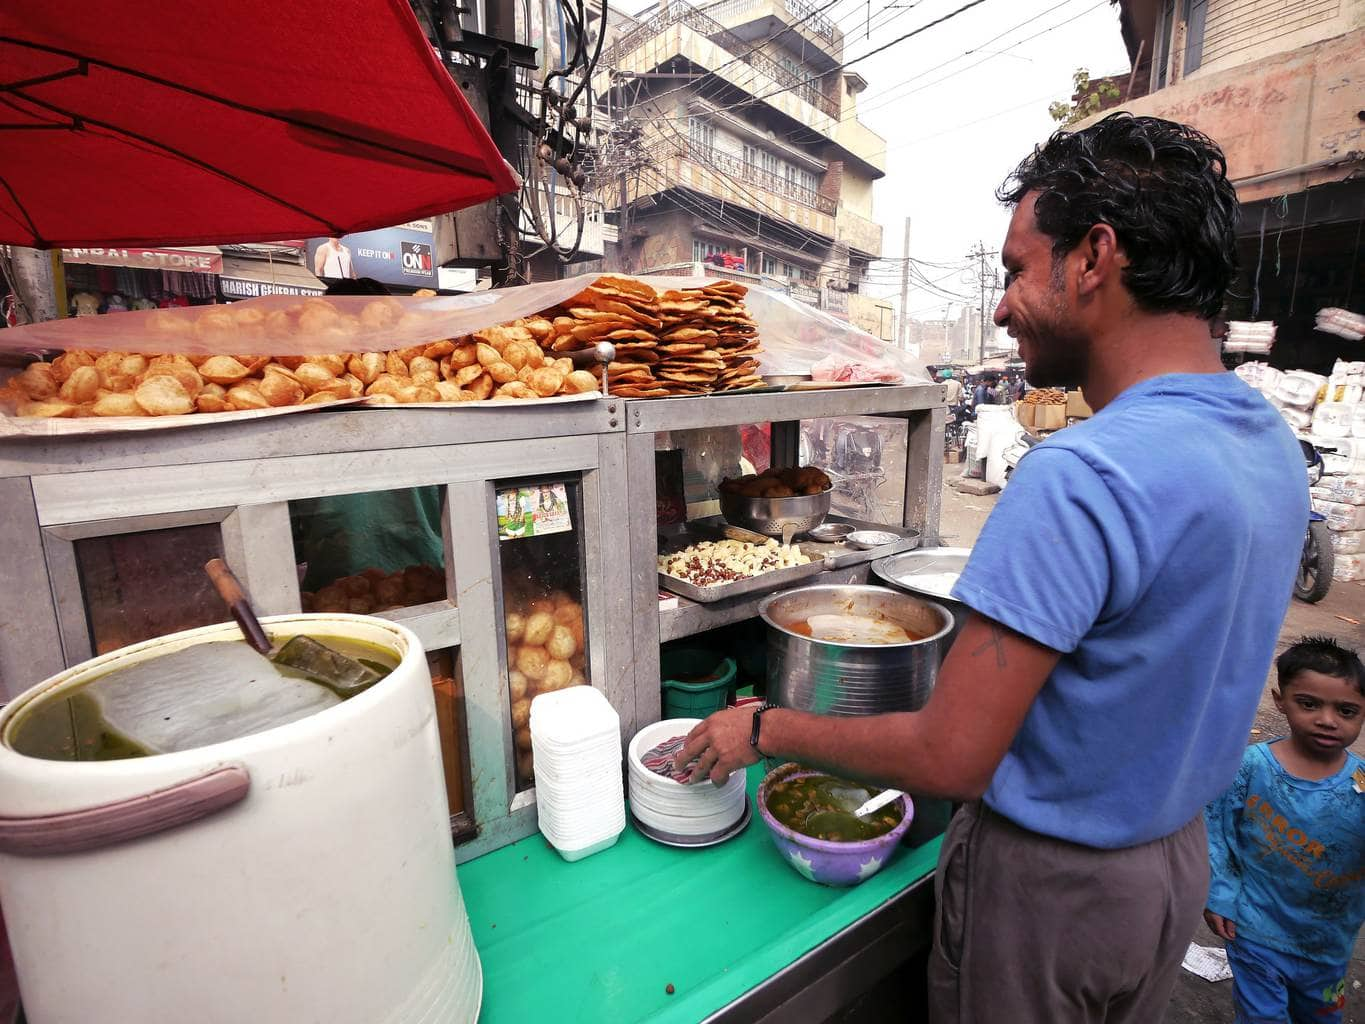 One of many snack street vendors in Amritsar